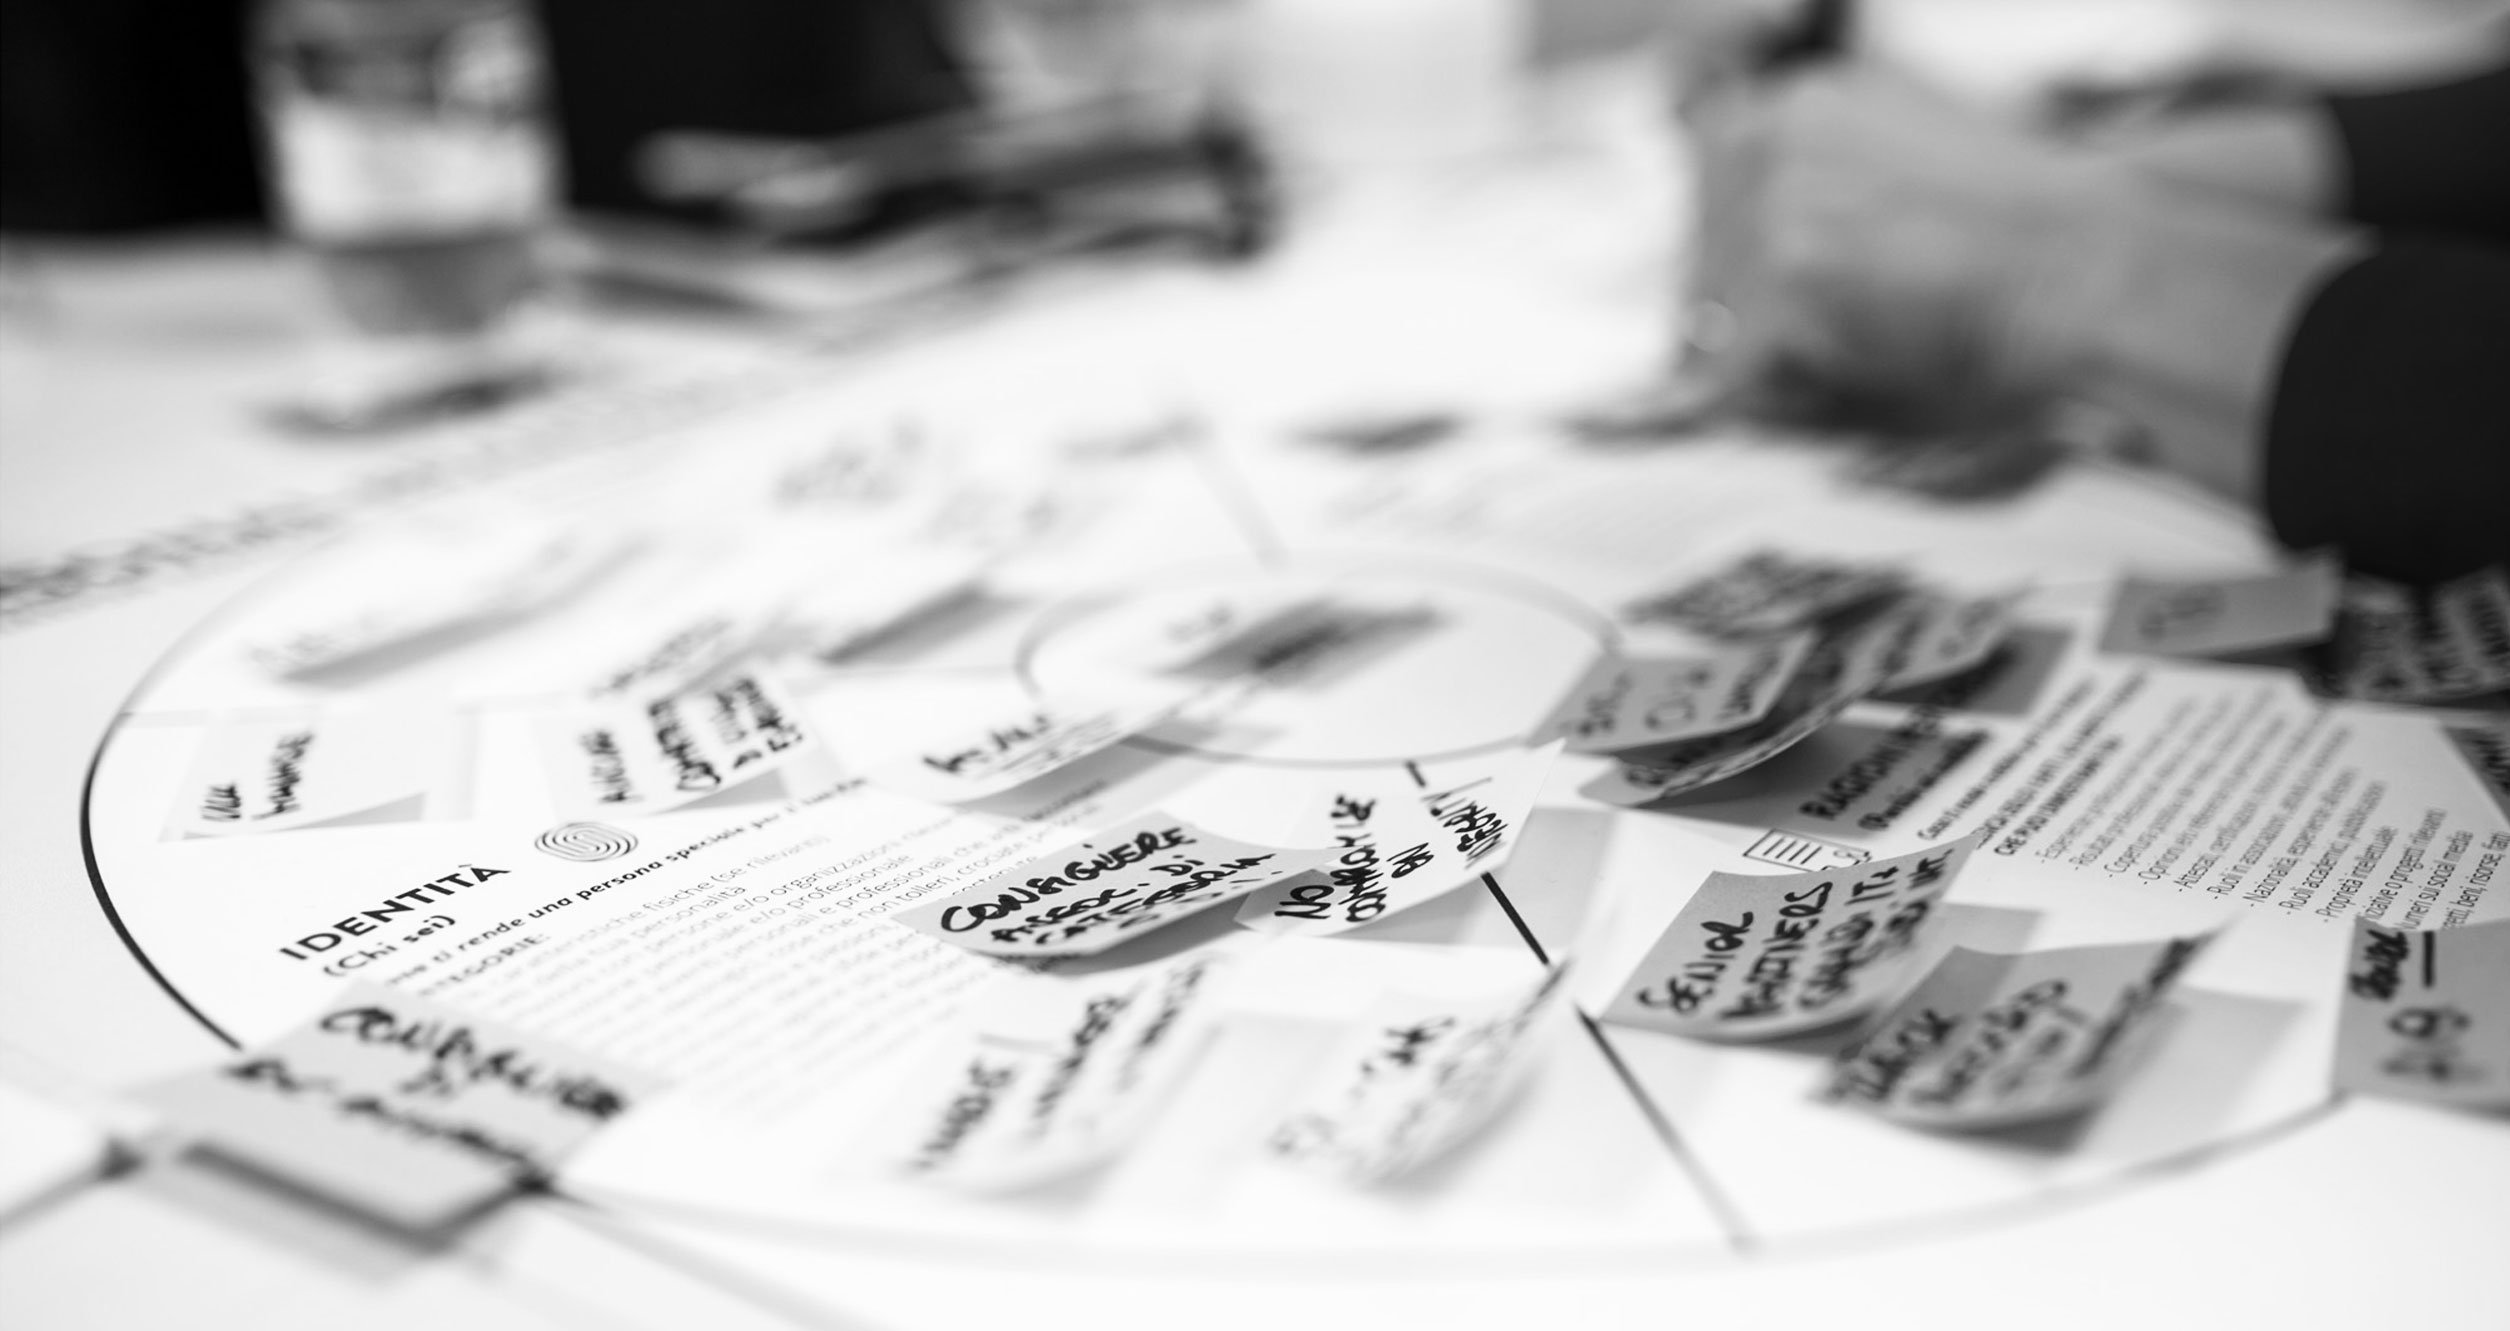 filling the personal branding canvas